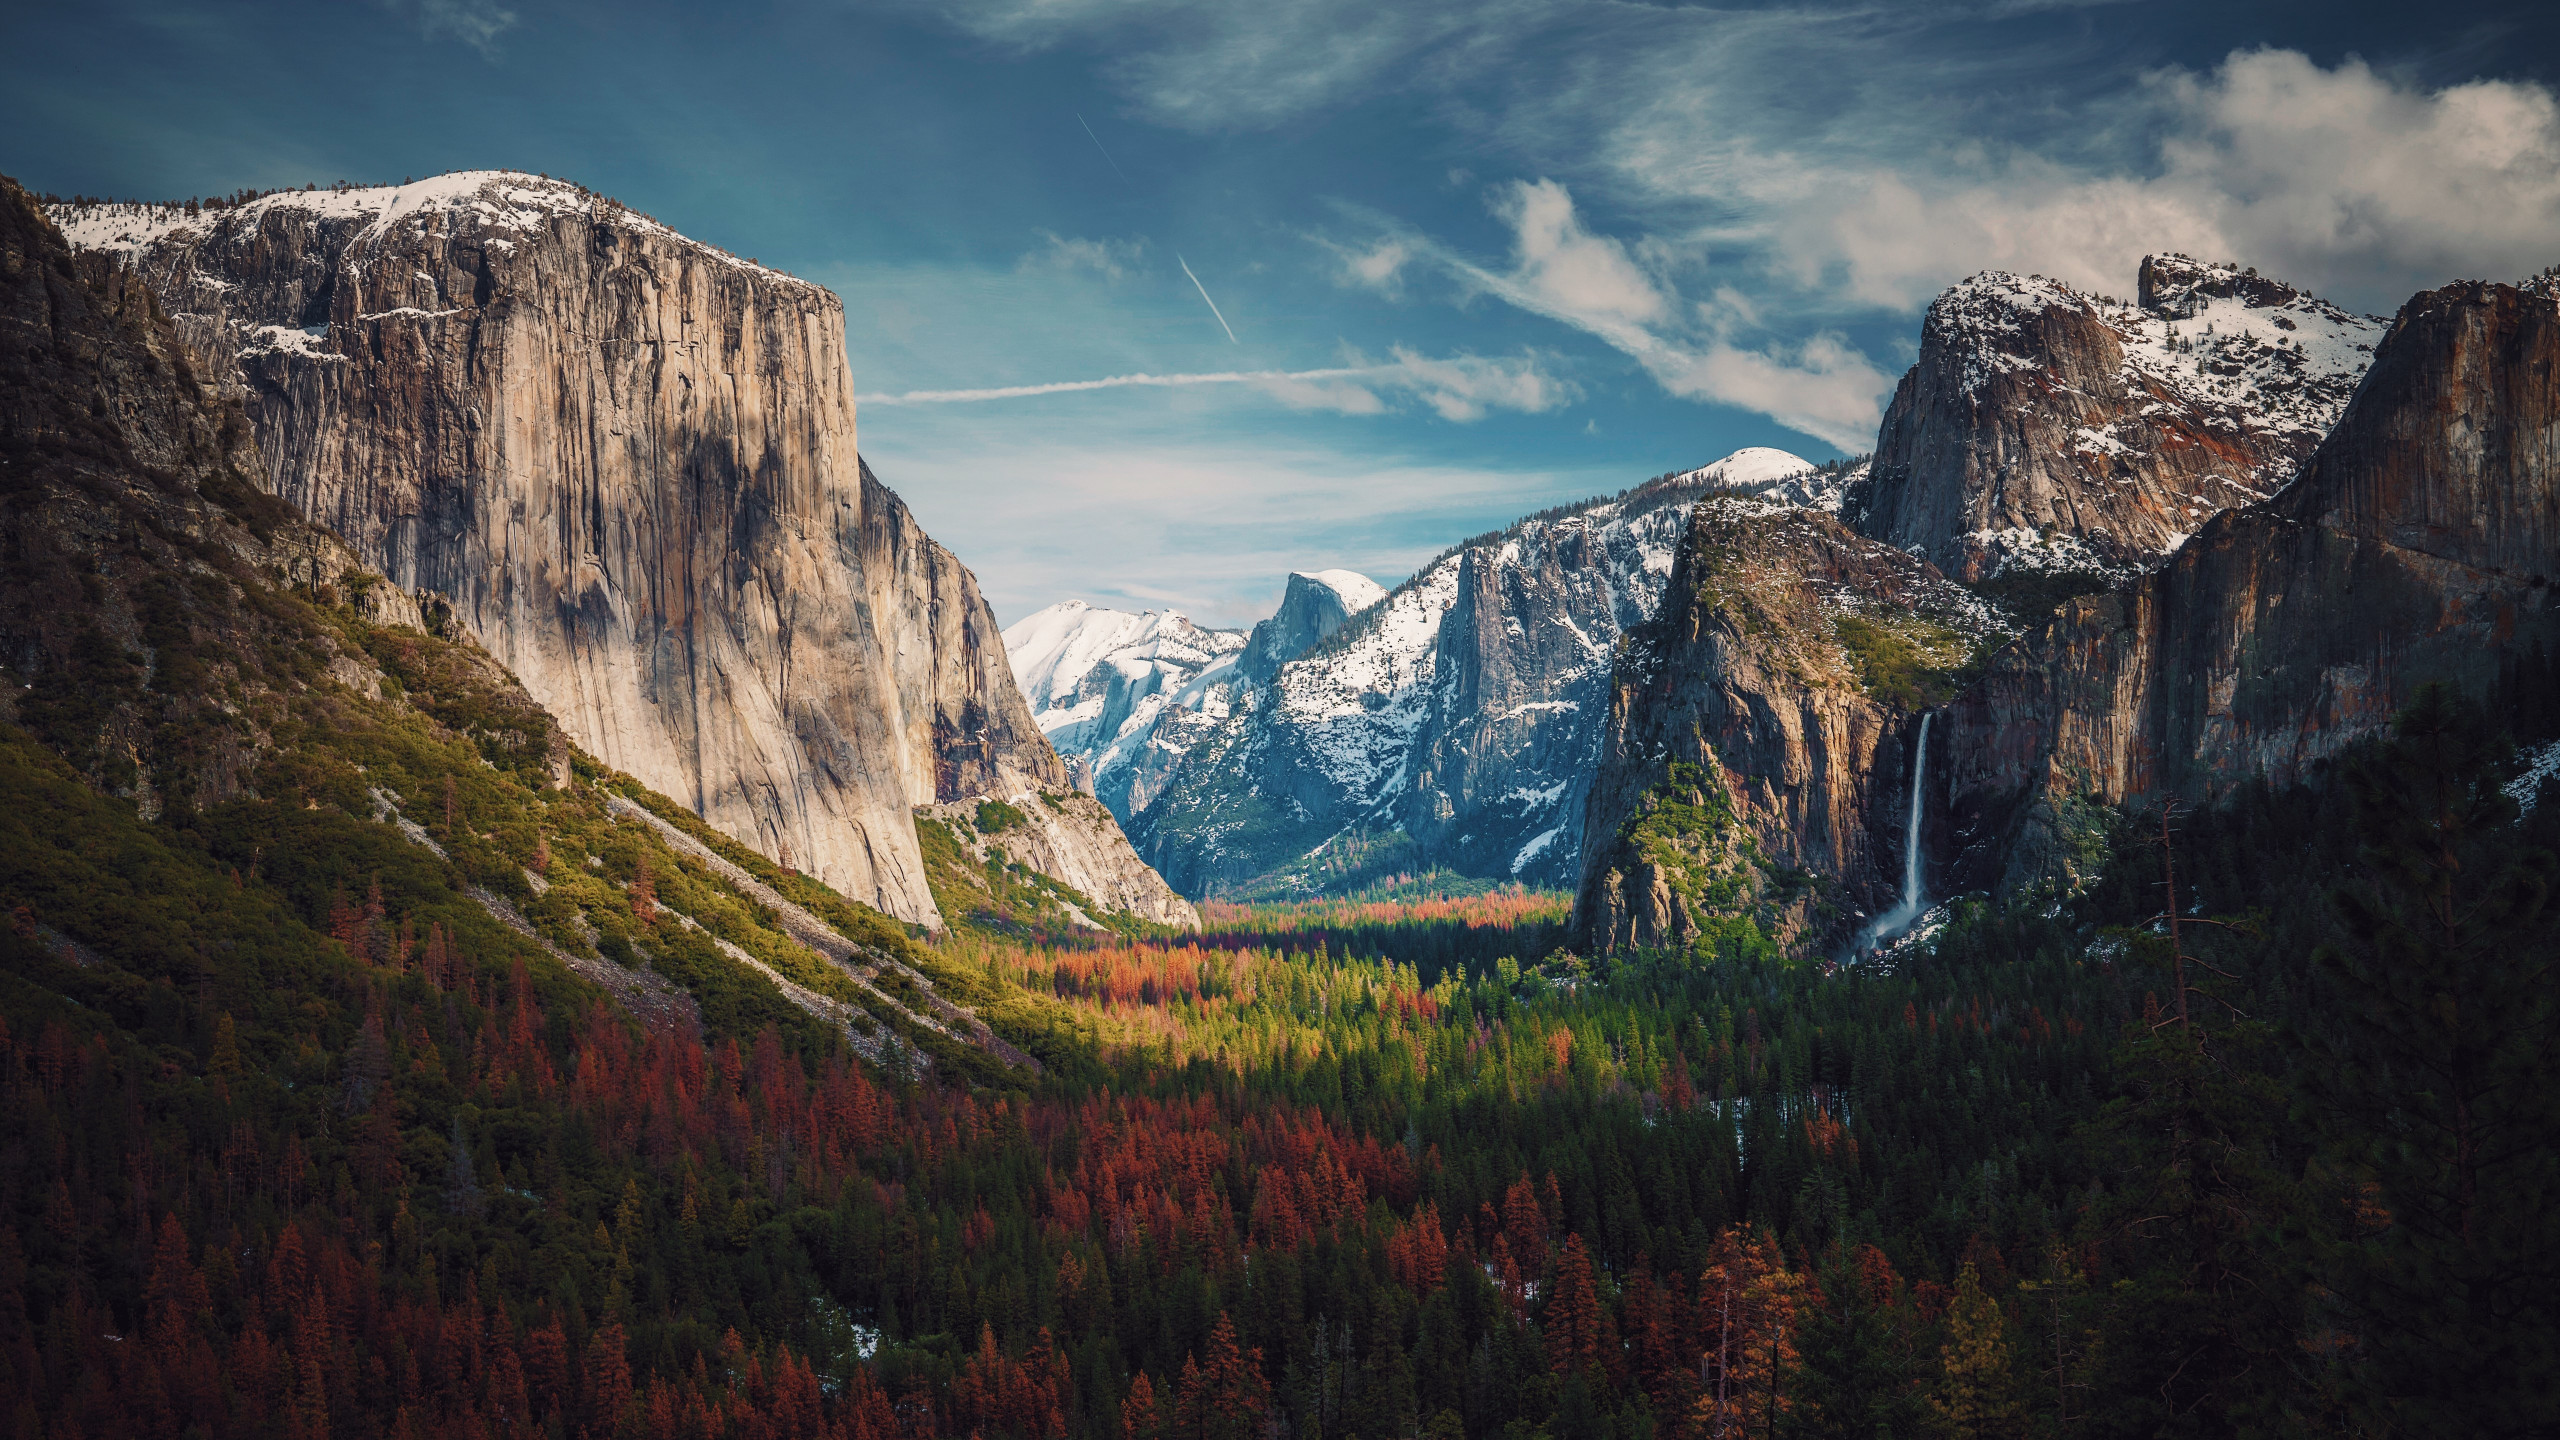 Best View from Yosemite wallpaper 2560x1440